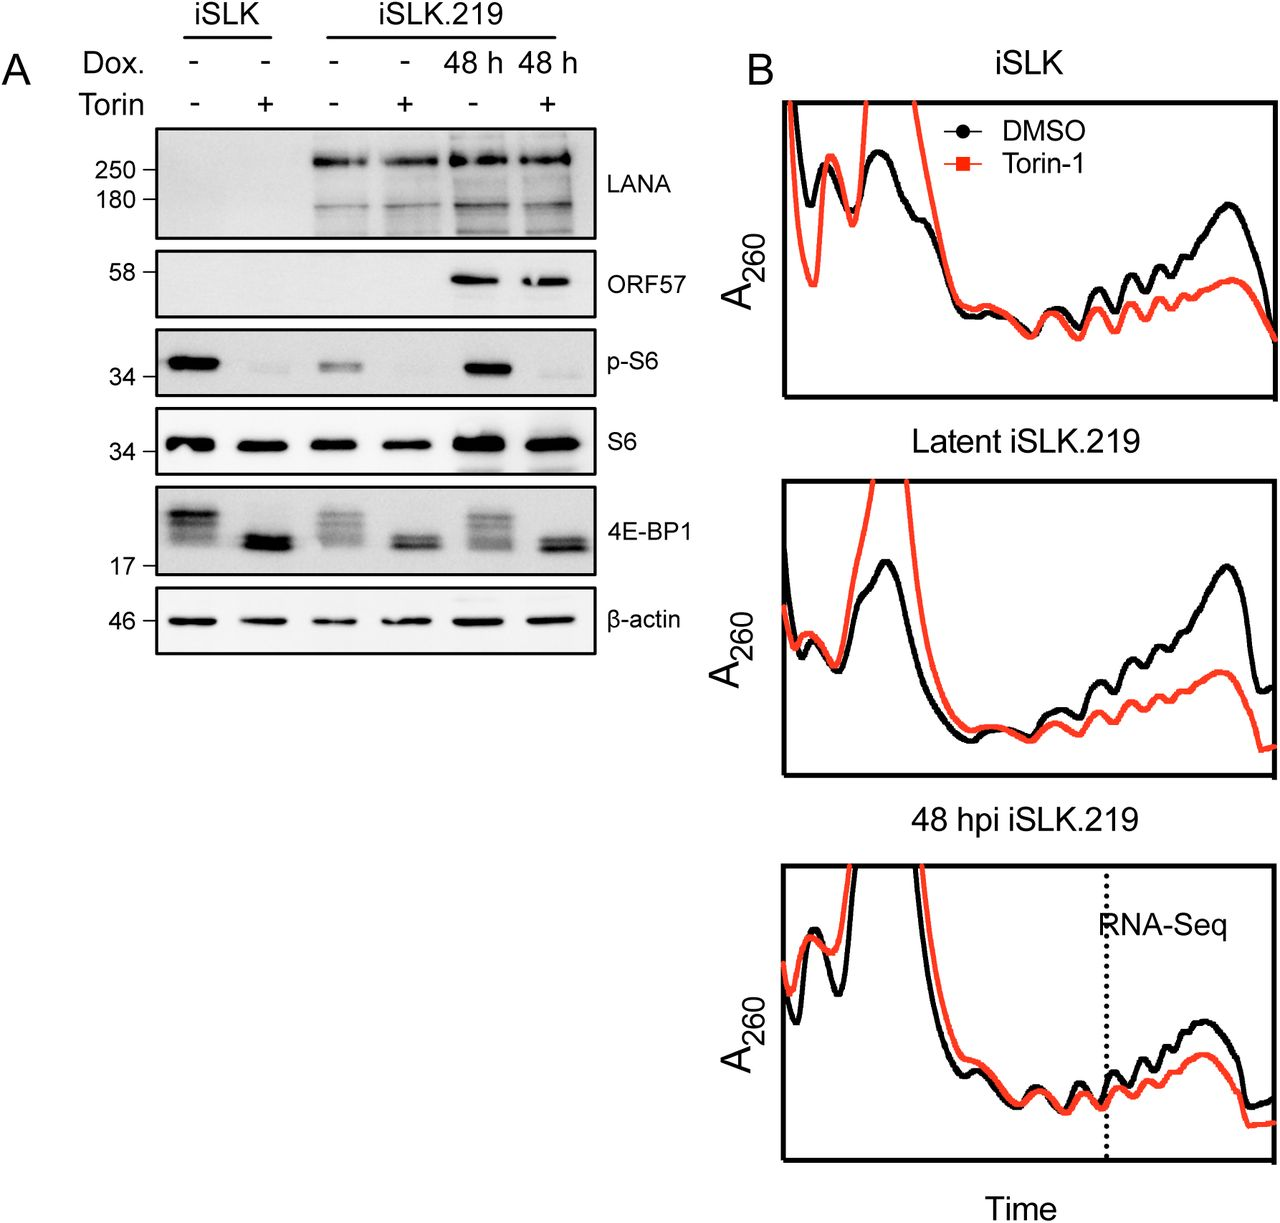 KSHV lytic replication reduces protein synthesis. (A) Western blots of whole cell lysates for polysome profiles. (B) Polysome profiles of uninfected, latent, or 48 hpi iSLK.219 treated with either Torin or DMSO for 2 h prior to harvest. Cells were treated with 100 µg/mL cycloheximide (CHX) for 5 minutes prior to harvest to prevent elongation. Cells were lysed in the presence of CHX and loaded on a 7-47% linear sucrose gradient. After separation by ultracentrifugation, the abundance of RNA (A 260 nm) in the gradient was continually measure as fractions were collected. RNA from the 48 hpi polysome fractions was isolated for sequencing.